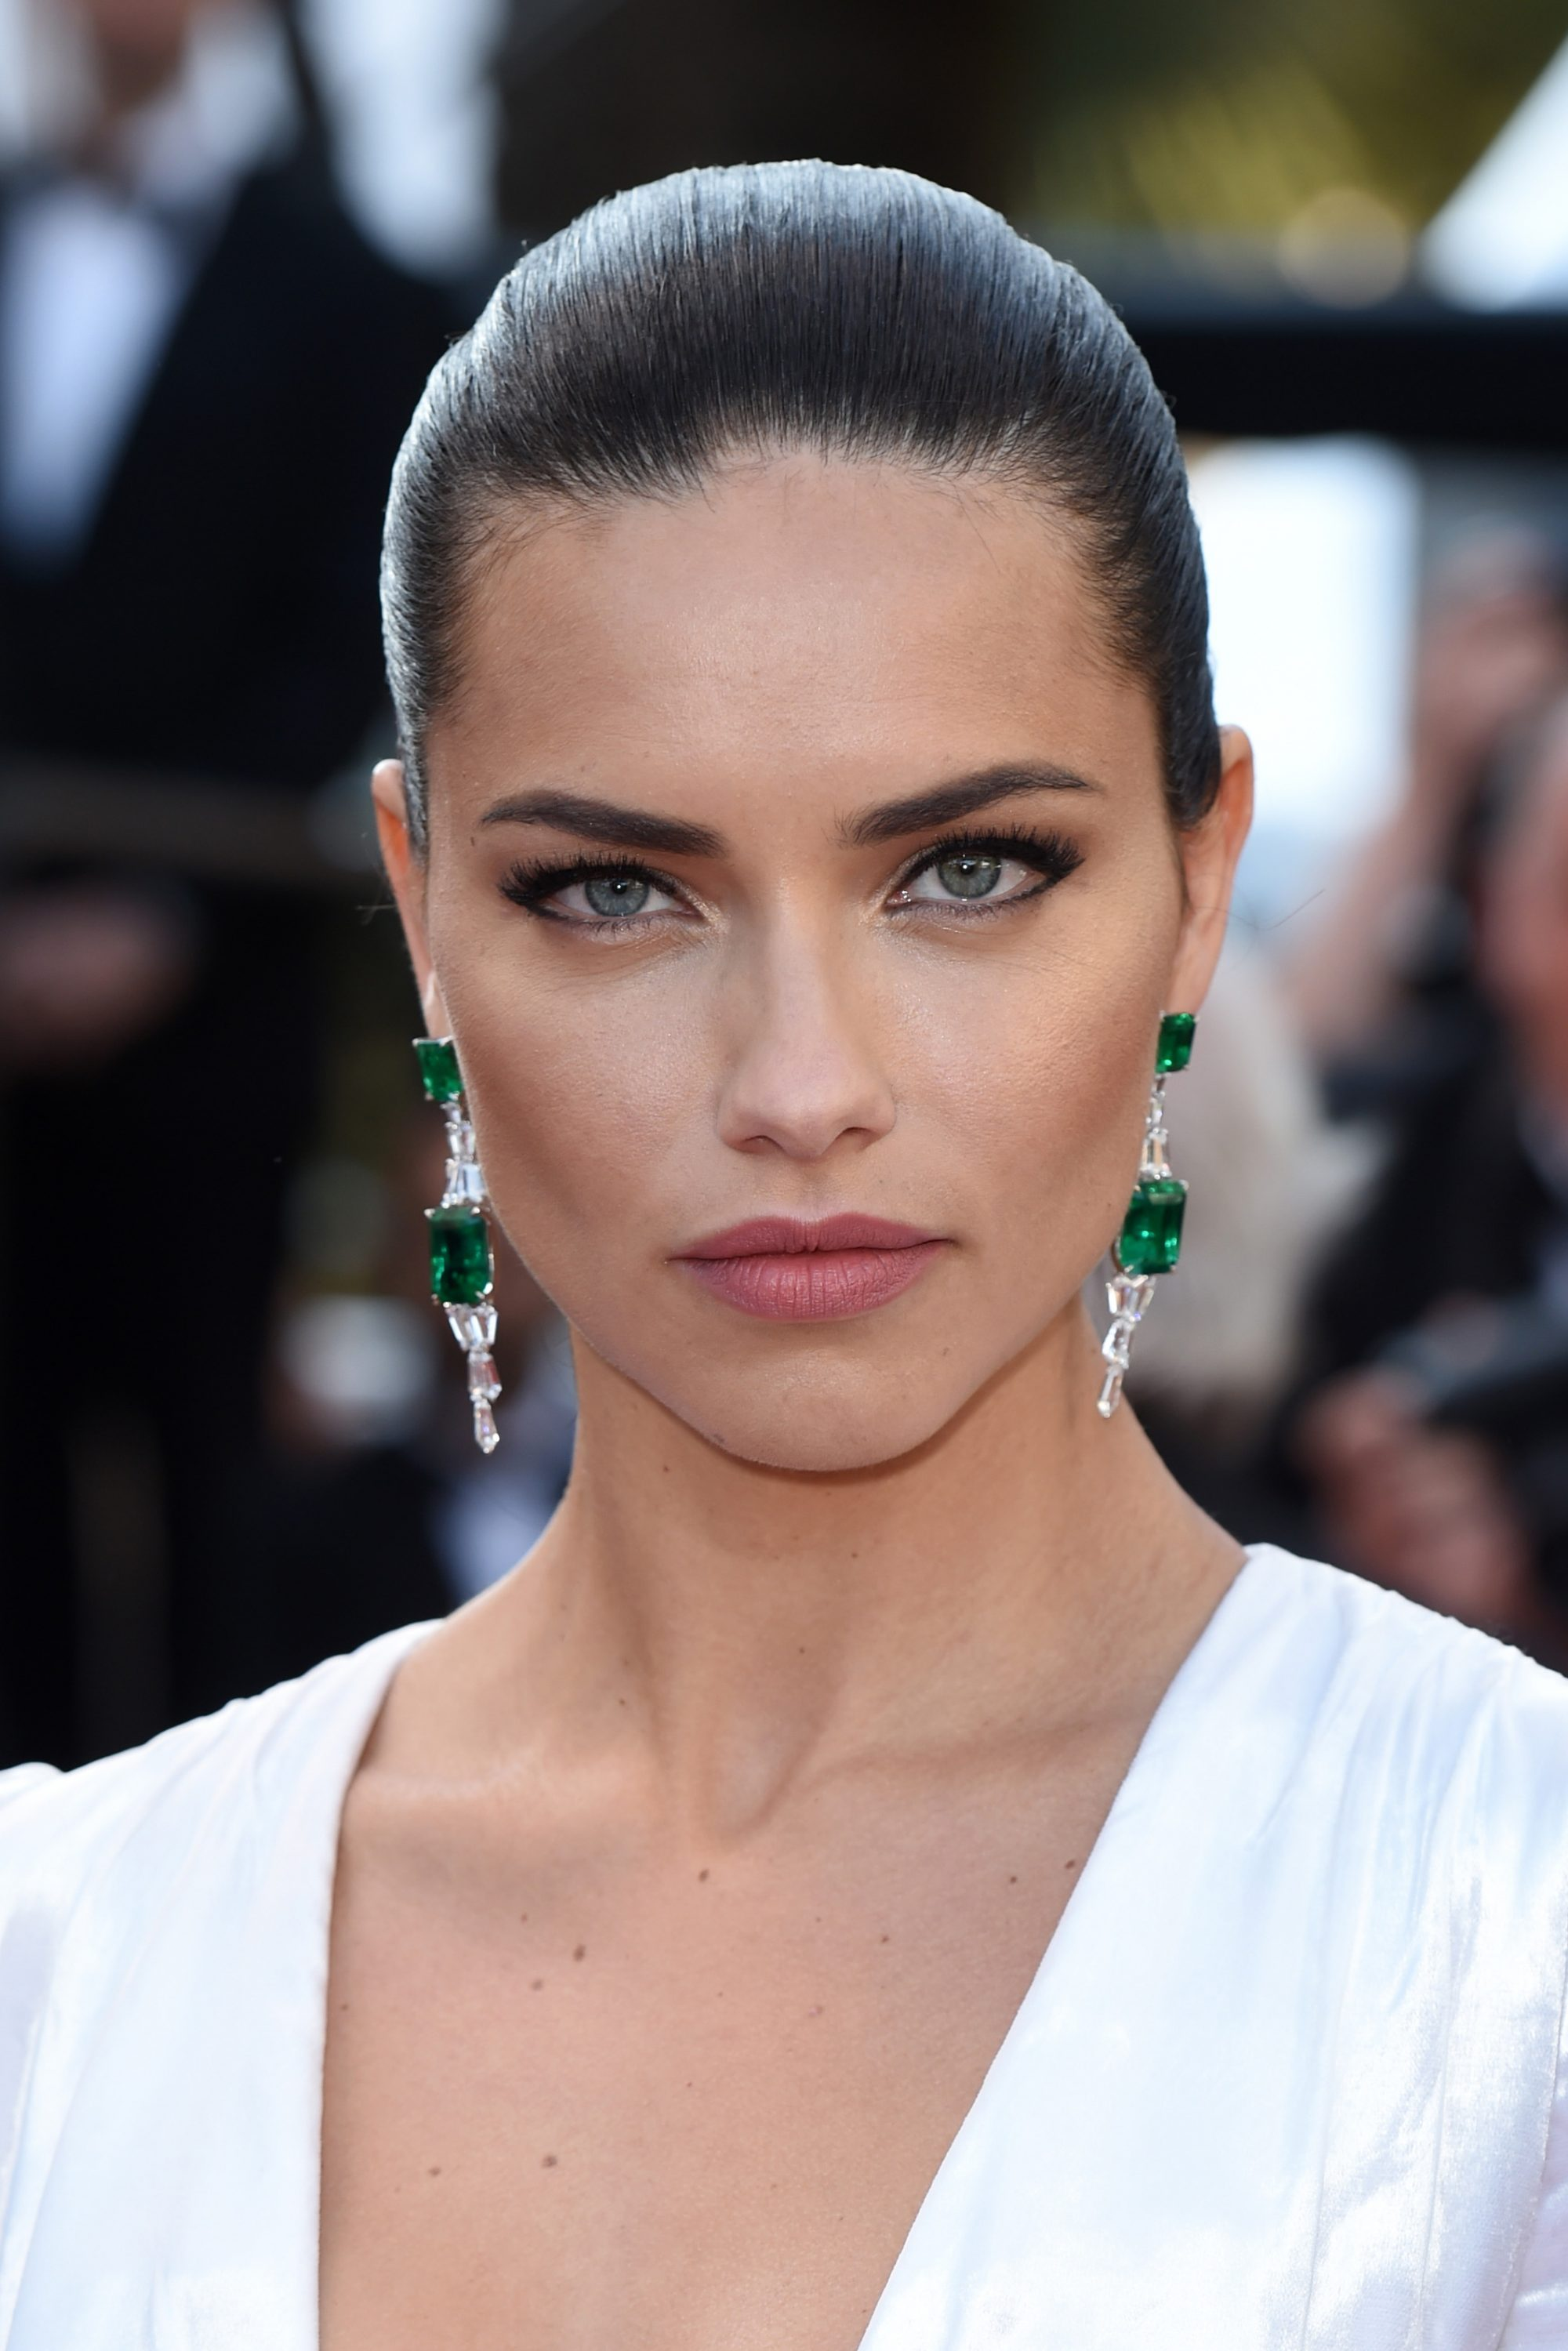 Best-Beauty-Cannes-Film-Festival-2016-Adriana-Lima--e1501163450723.jpg